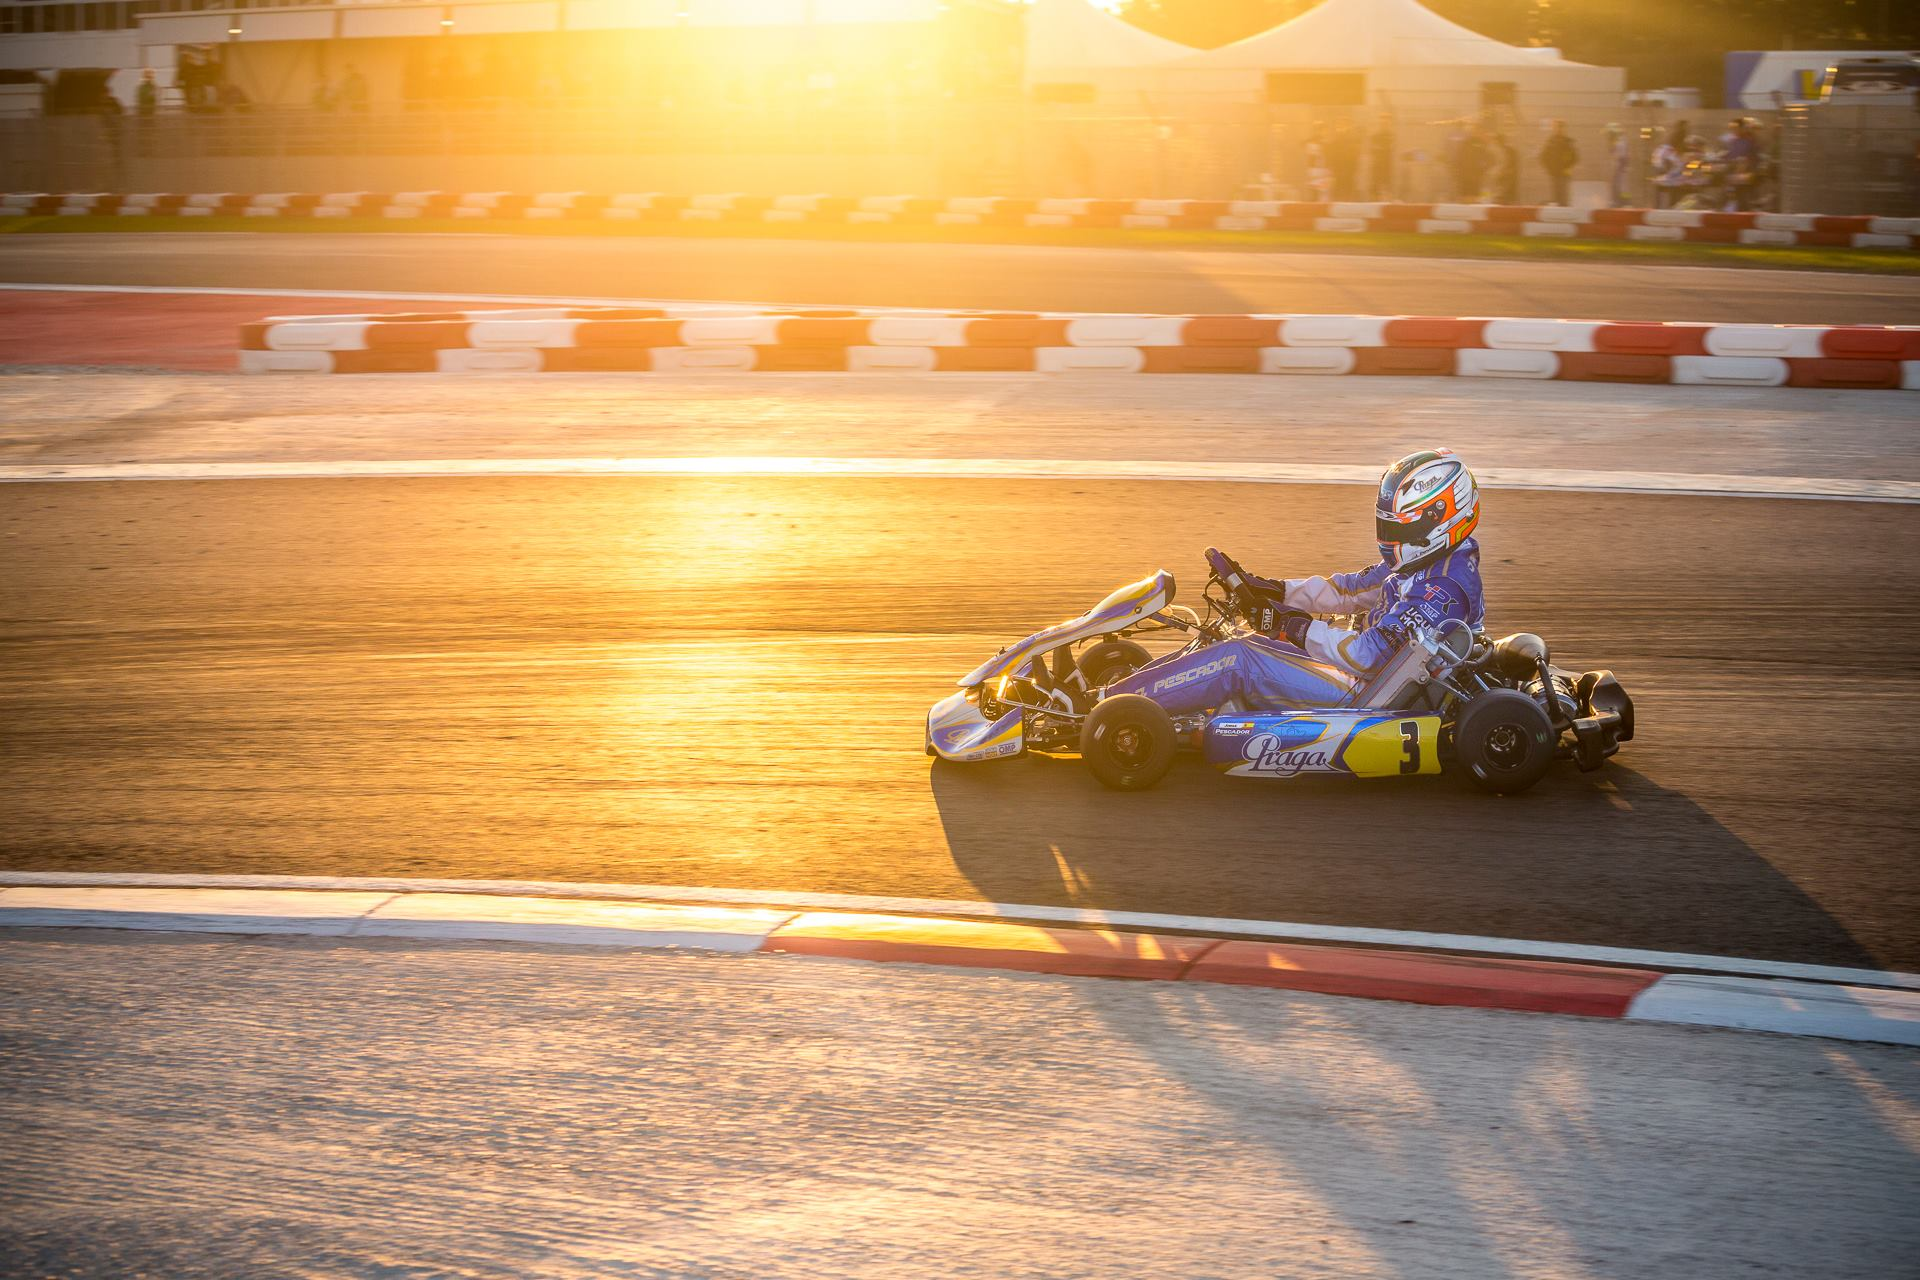 Successful end of season for PRAGA Kart Racing!